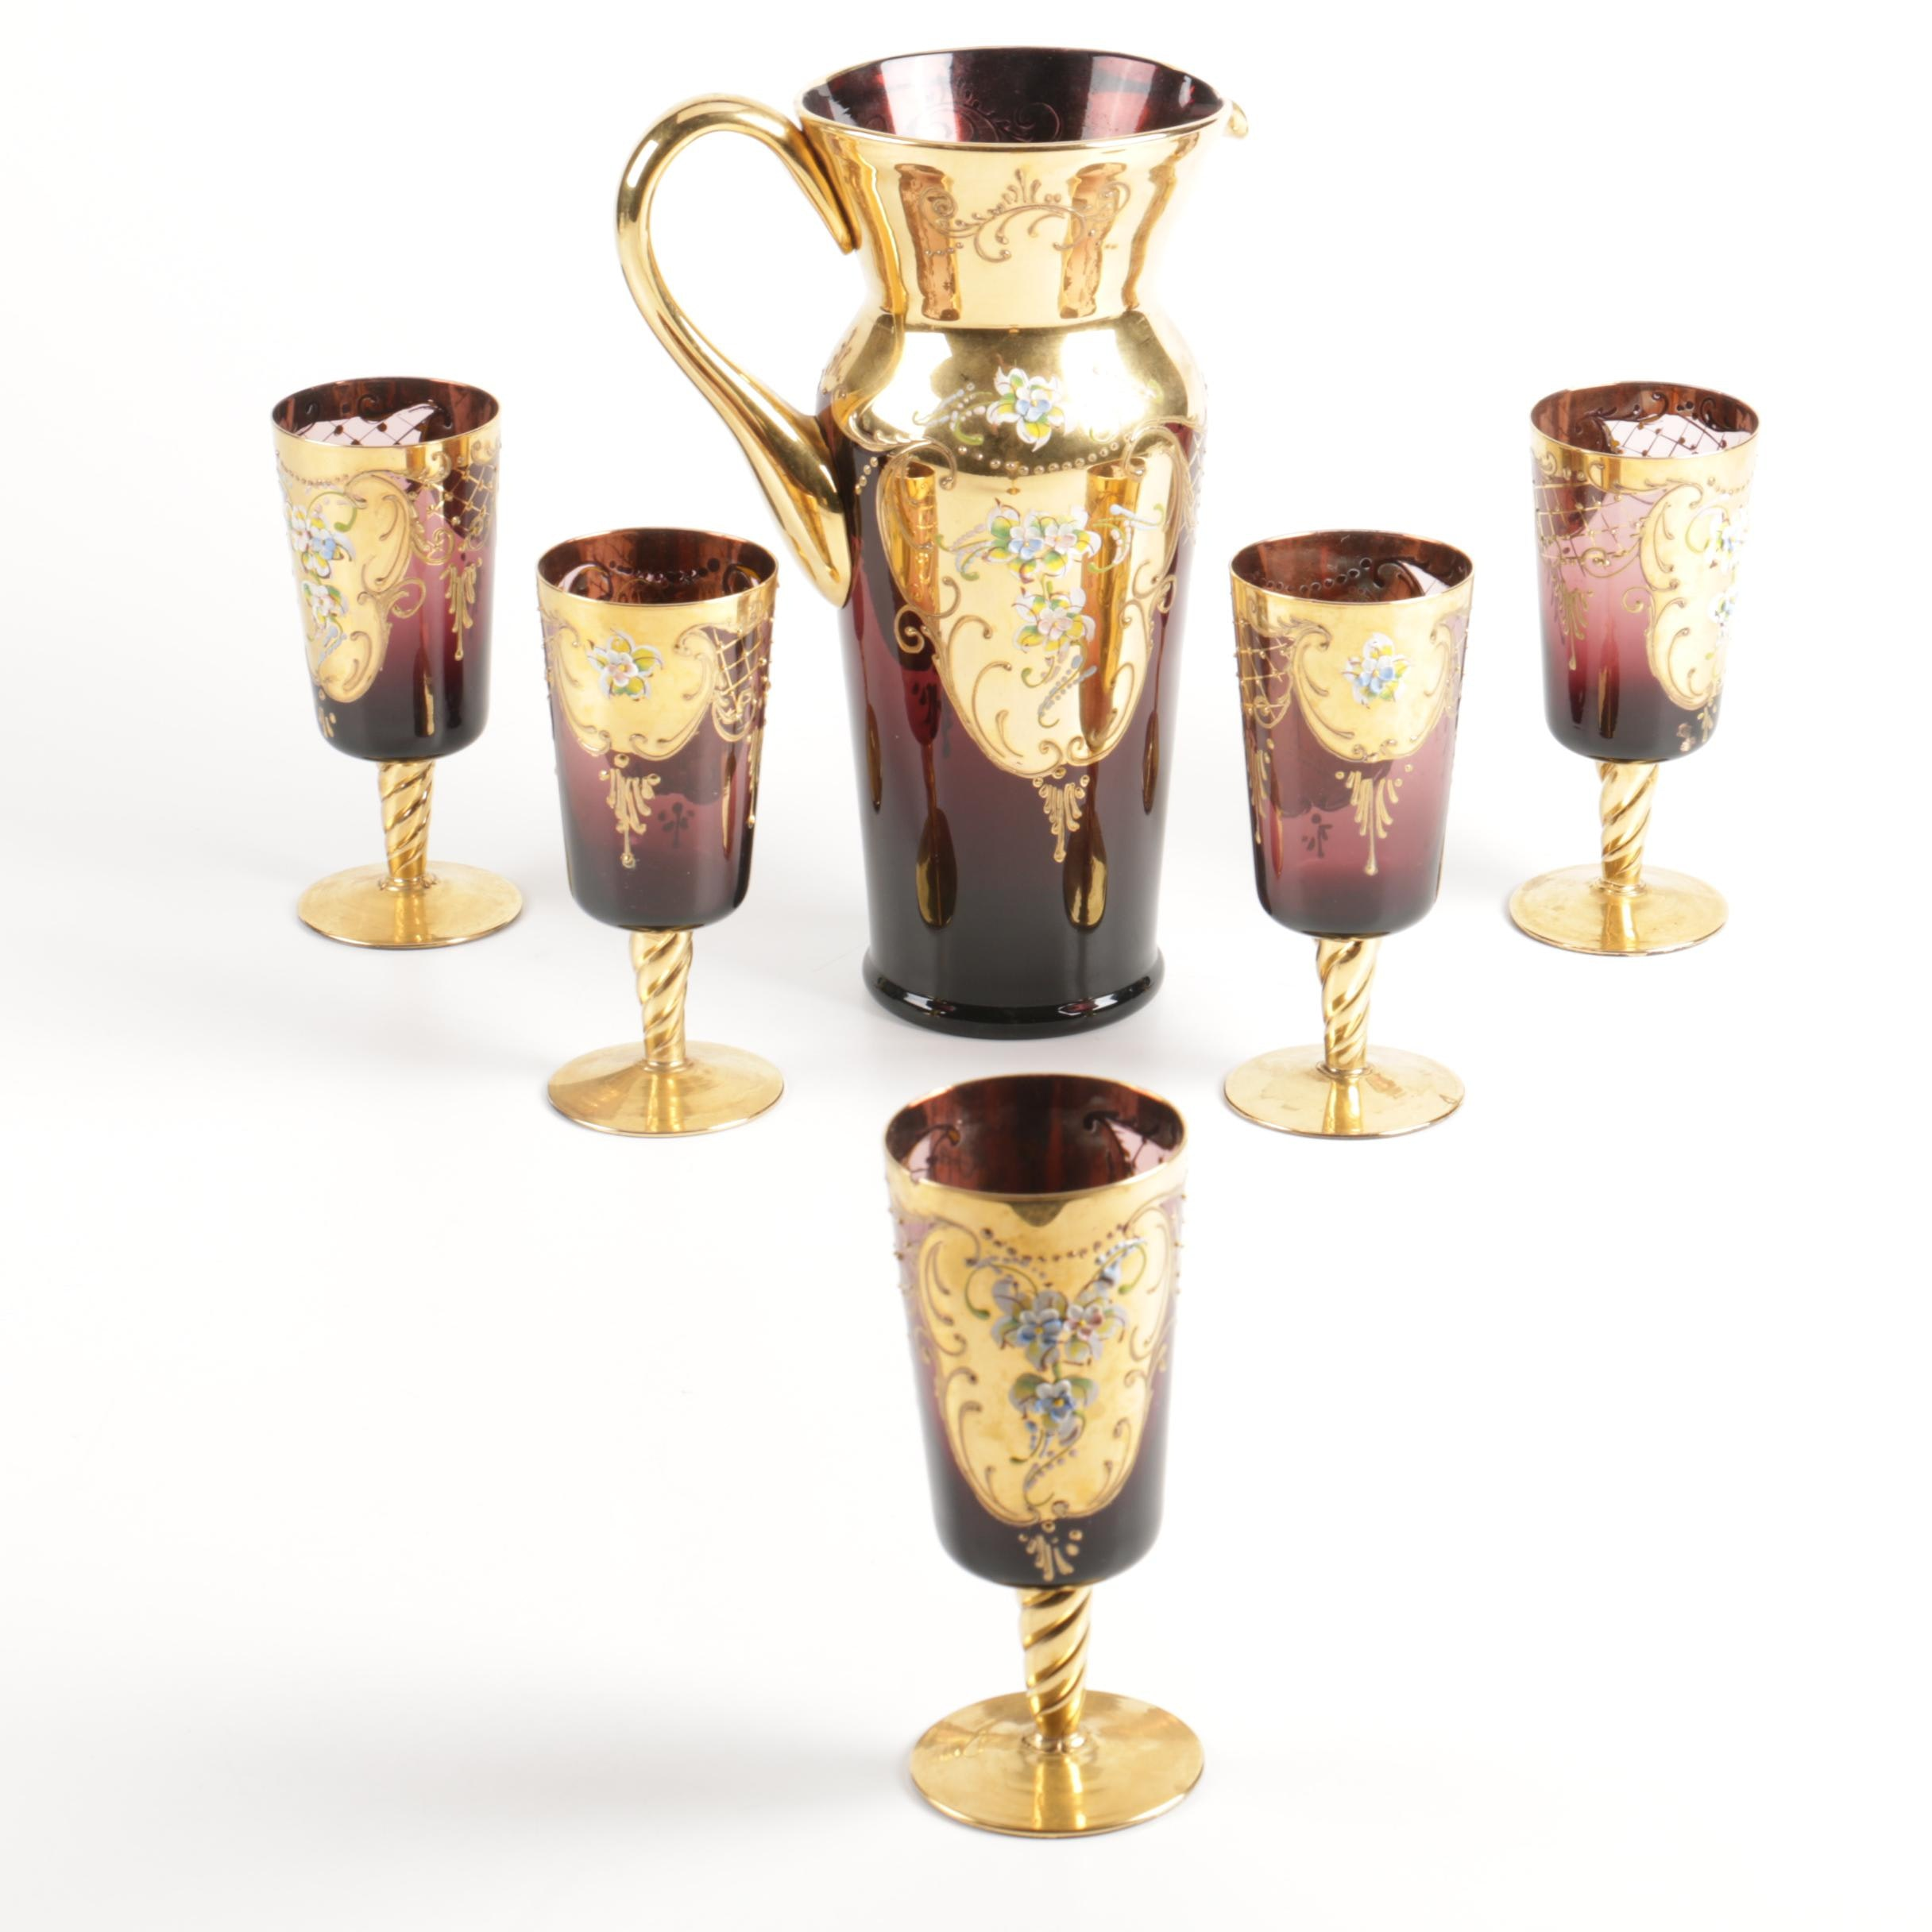 Gilded and Pomegranate Glass Pitcher and Footed Glasses